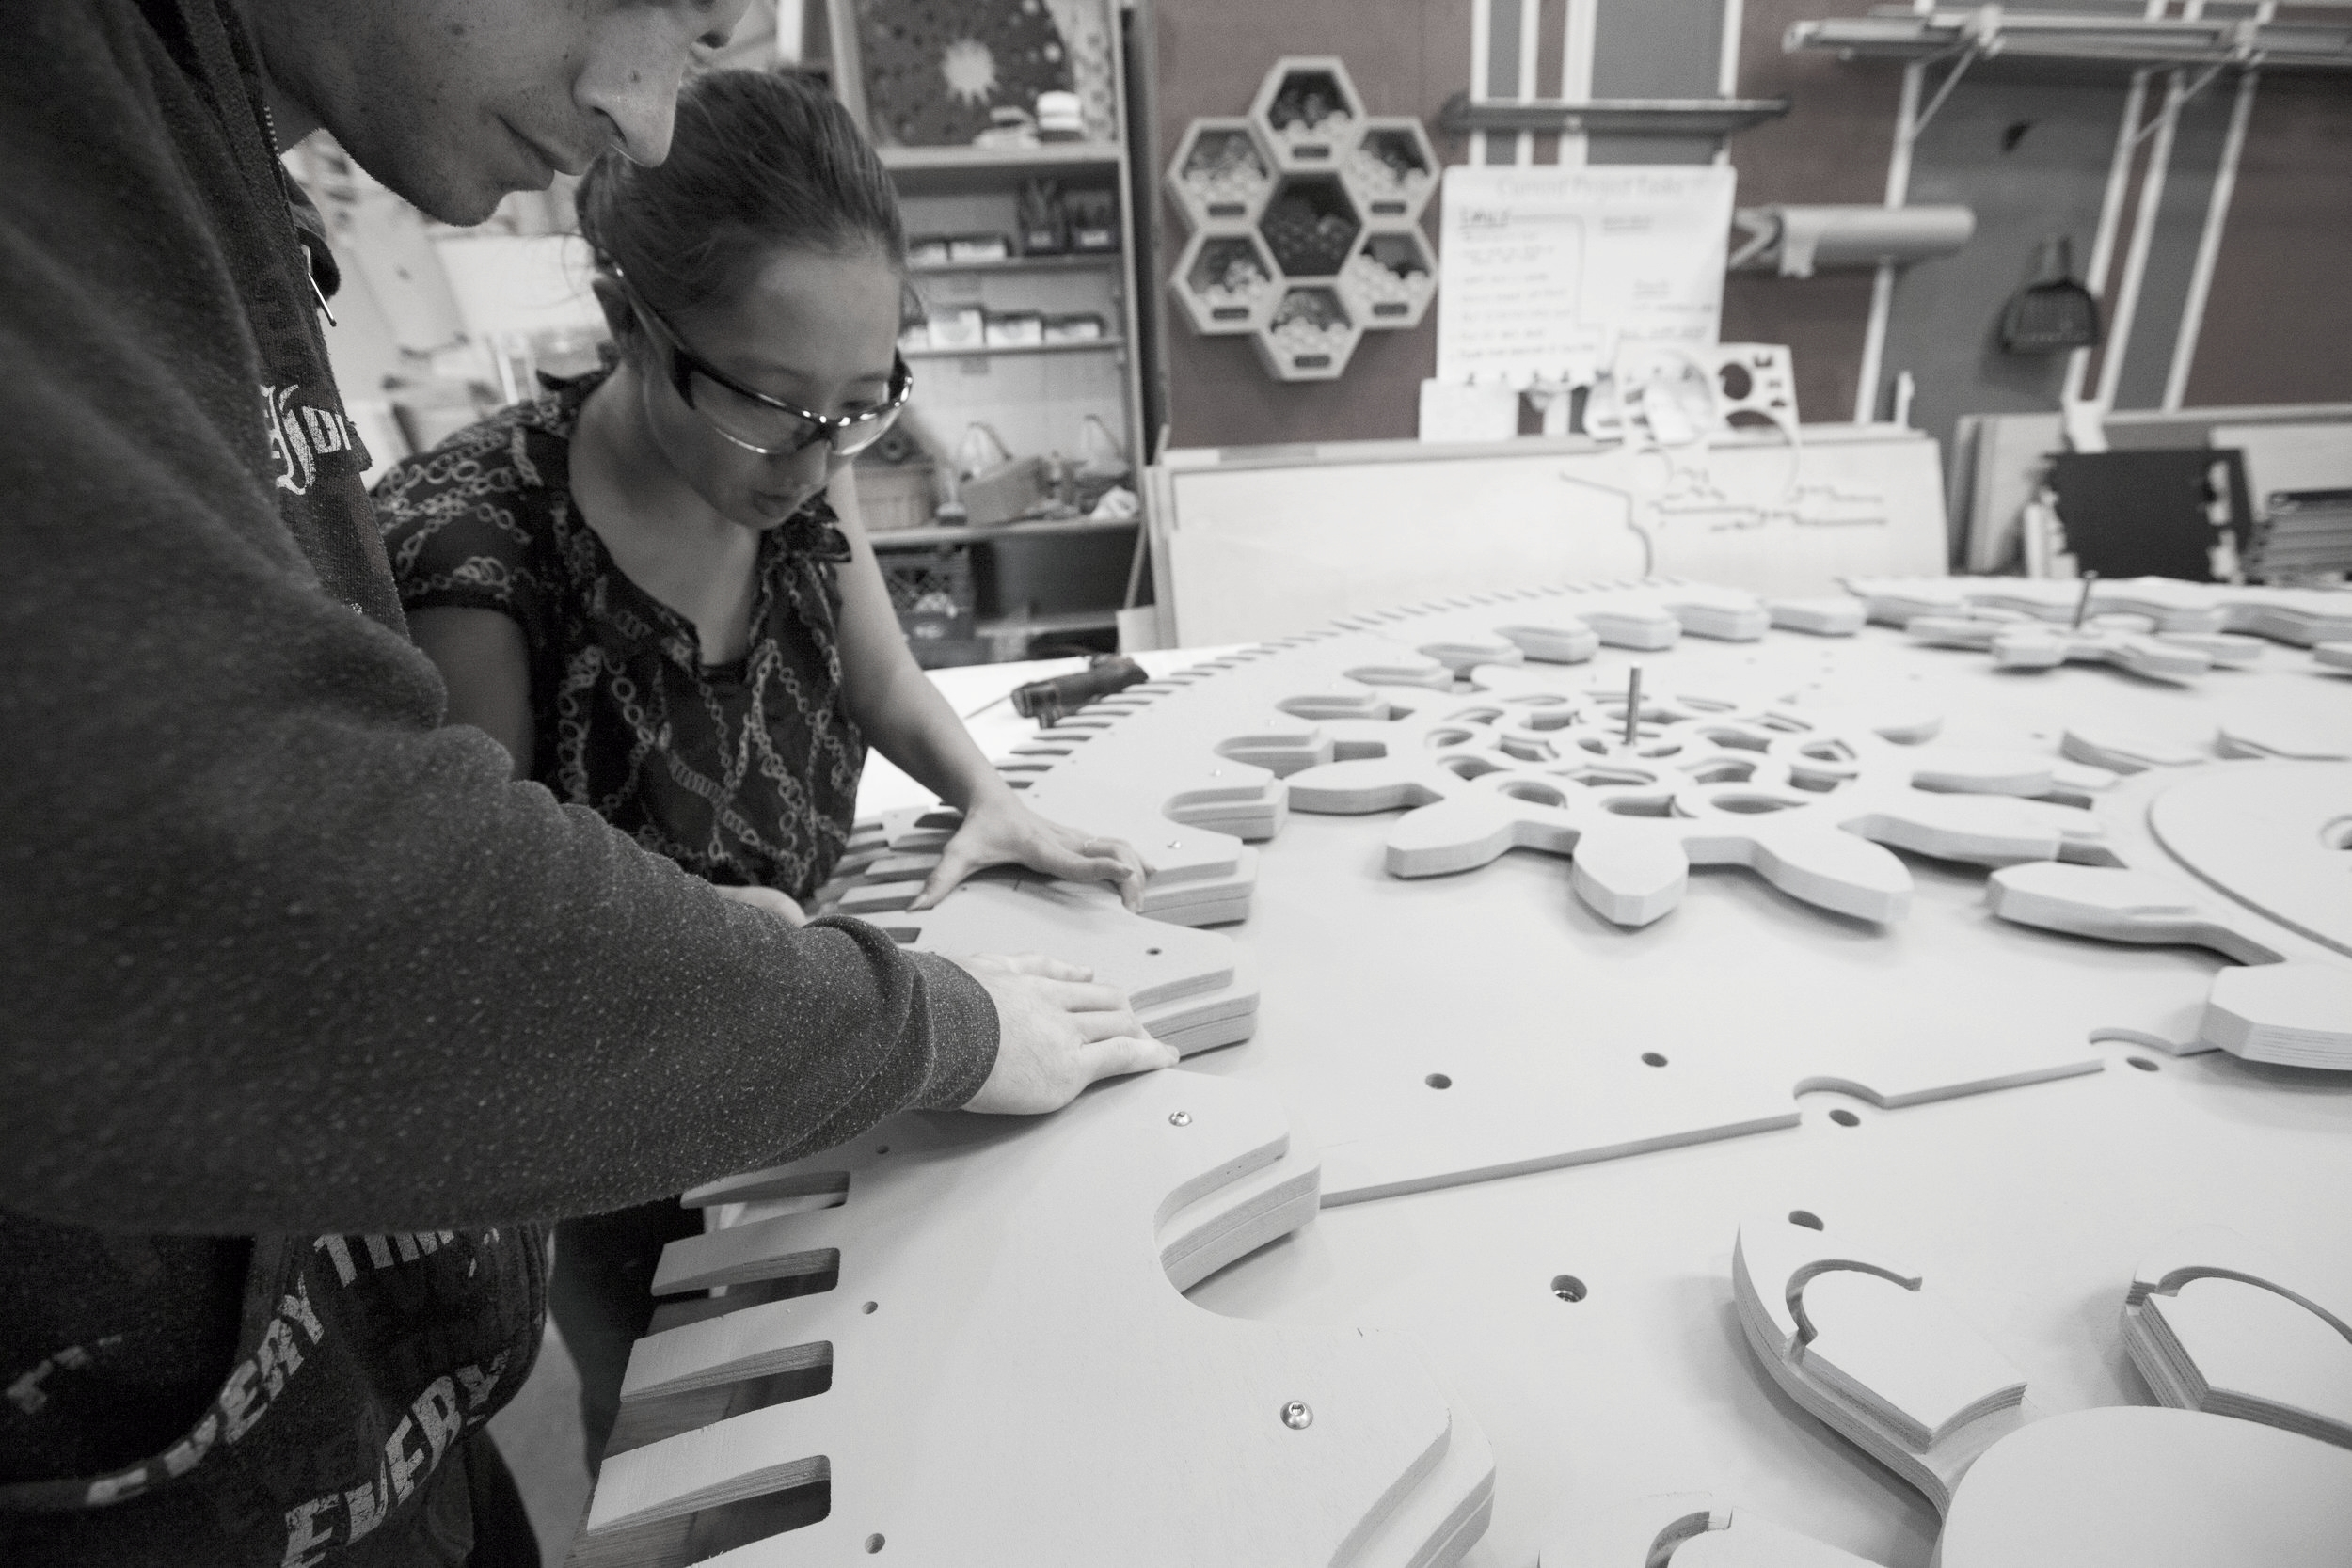 Our fabricator & designer working hand-in-hand to complete the custom furniture on time.